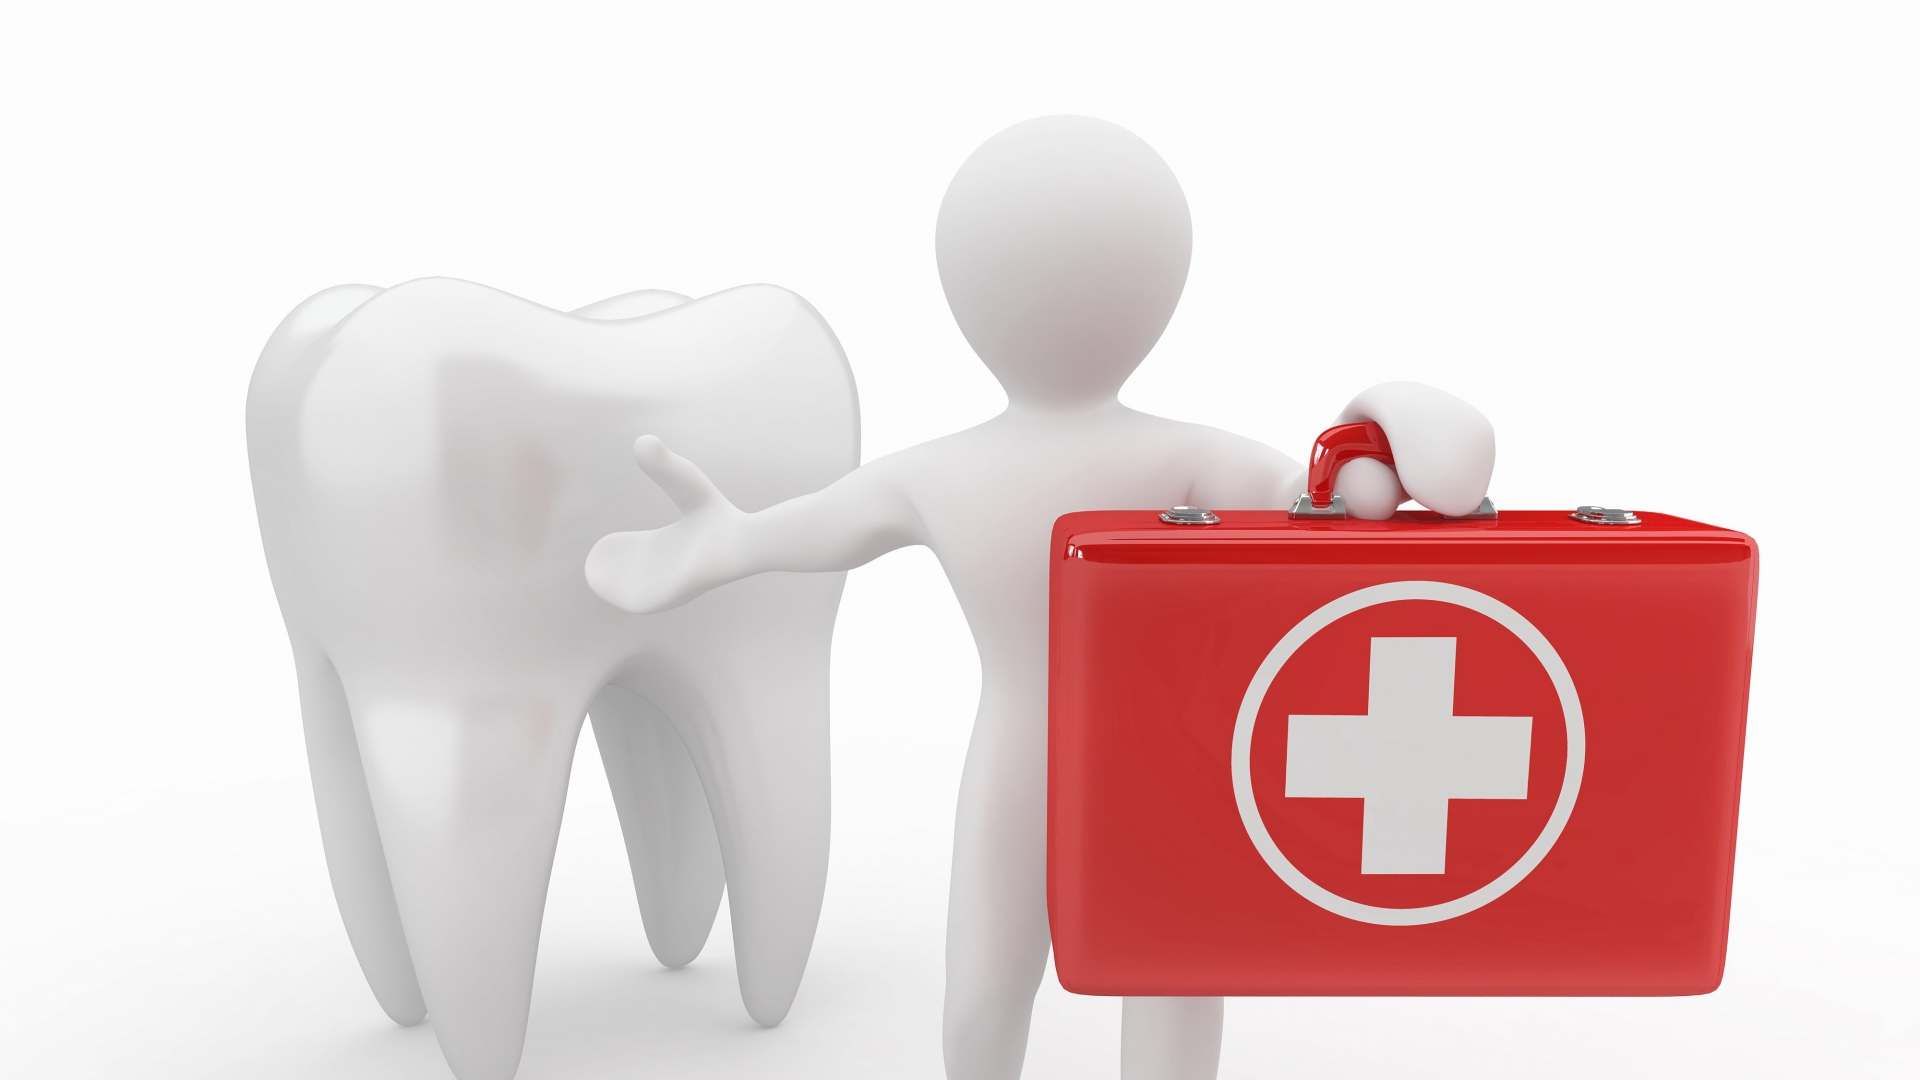 Download Wallpaper 1920x1080 Tooth Man Health Dental Suitcase White Background Full Hd 1080p Hd Background